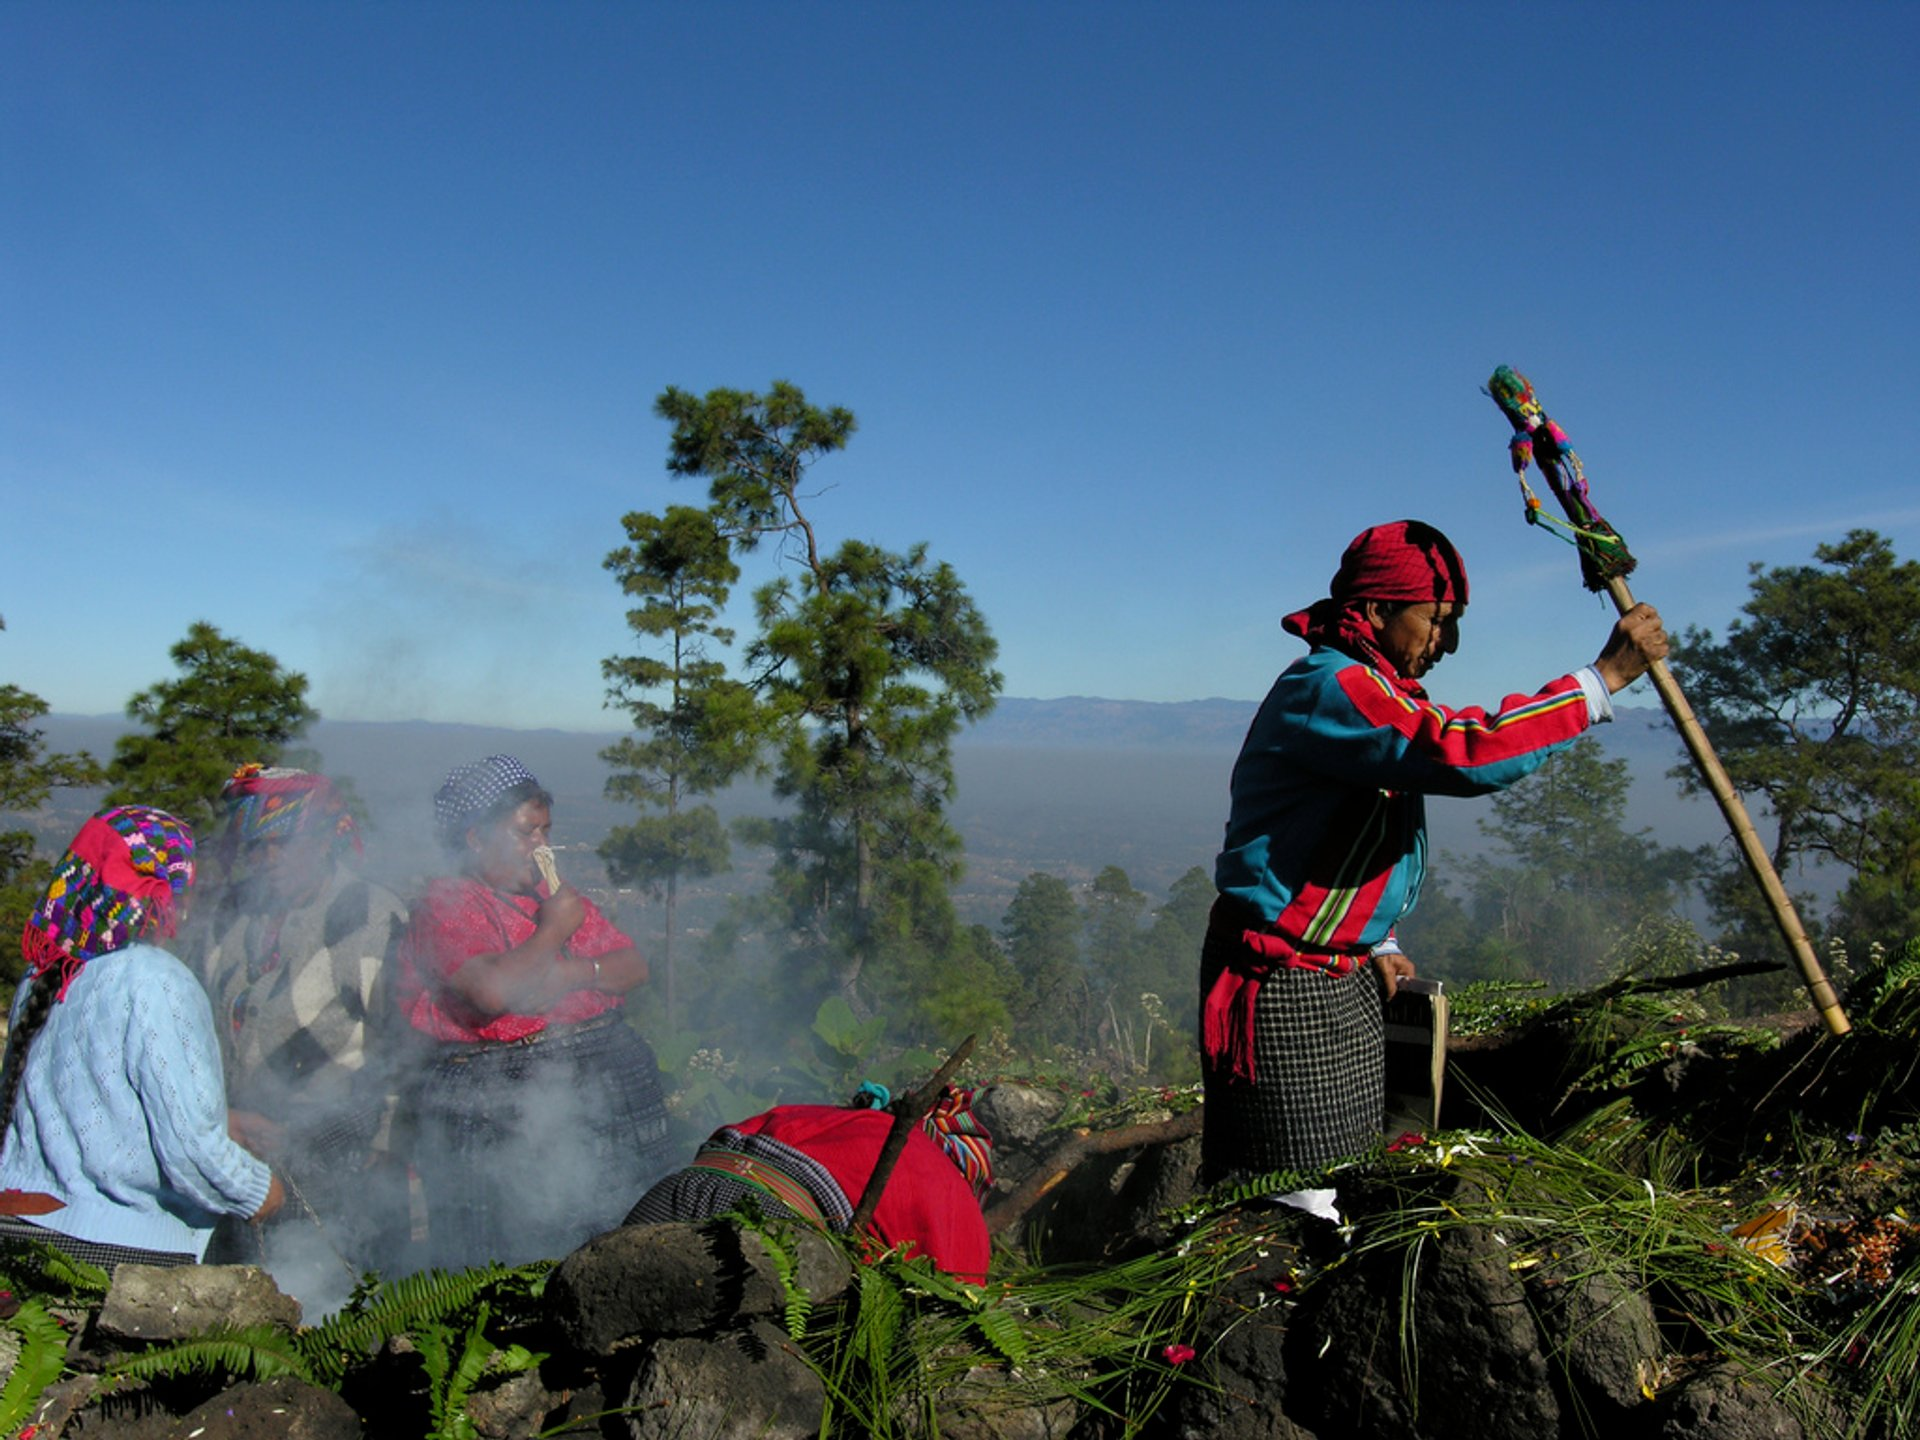 Best time to see Mayan New Year Celebration in Guatemala 2020